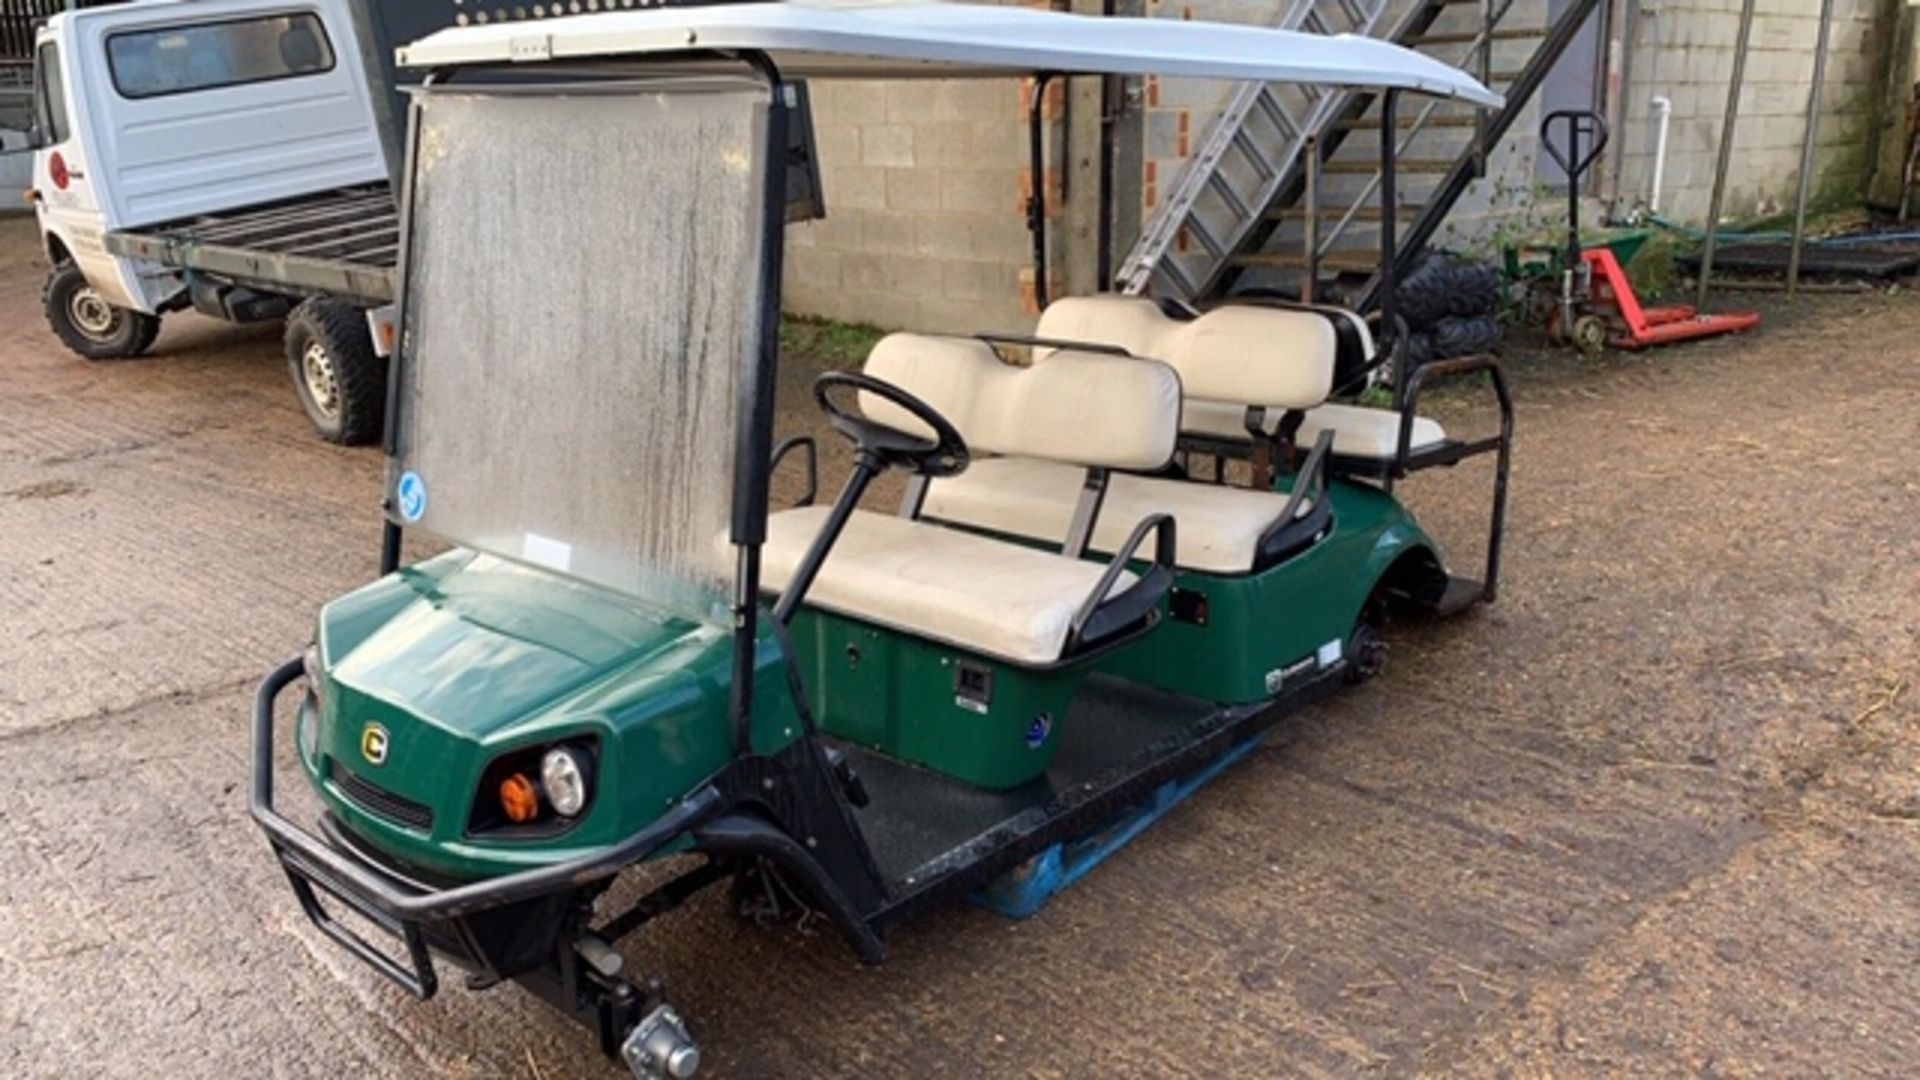 Lot 15 - CUSHMAN EZGO SHUTTLE 6 BATTERY POWERED GOLF / EVENTS TRANSPORT BUGGY. YEAR 2014 BUILD. 1772 REC HRS.